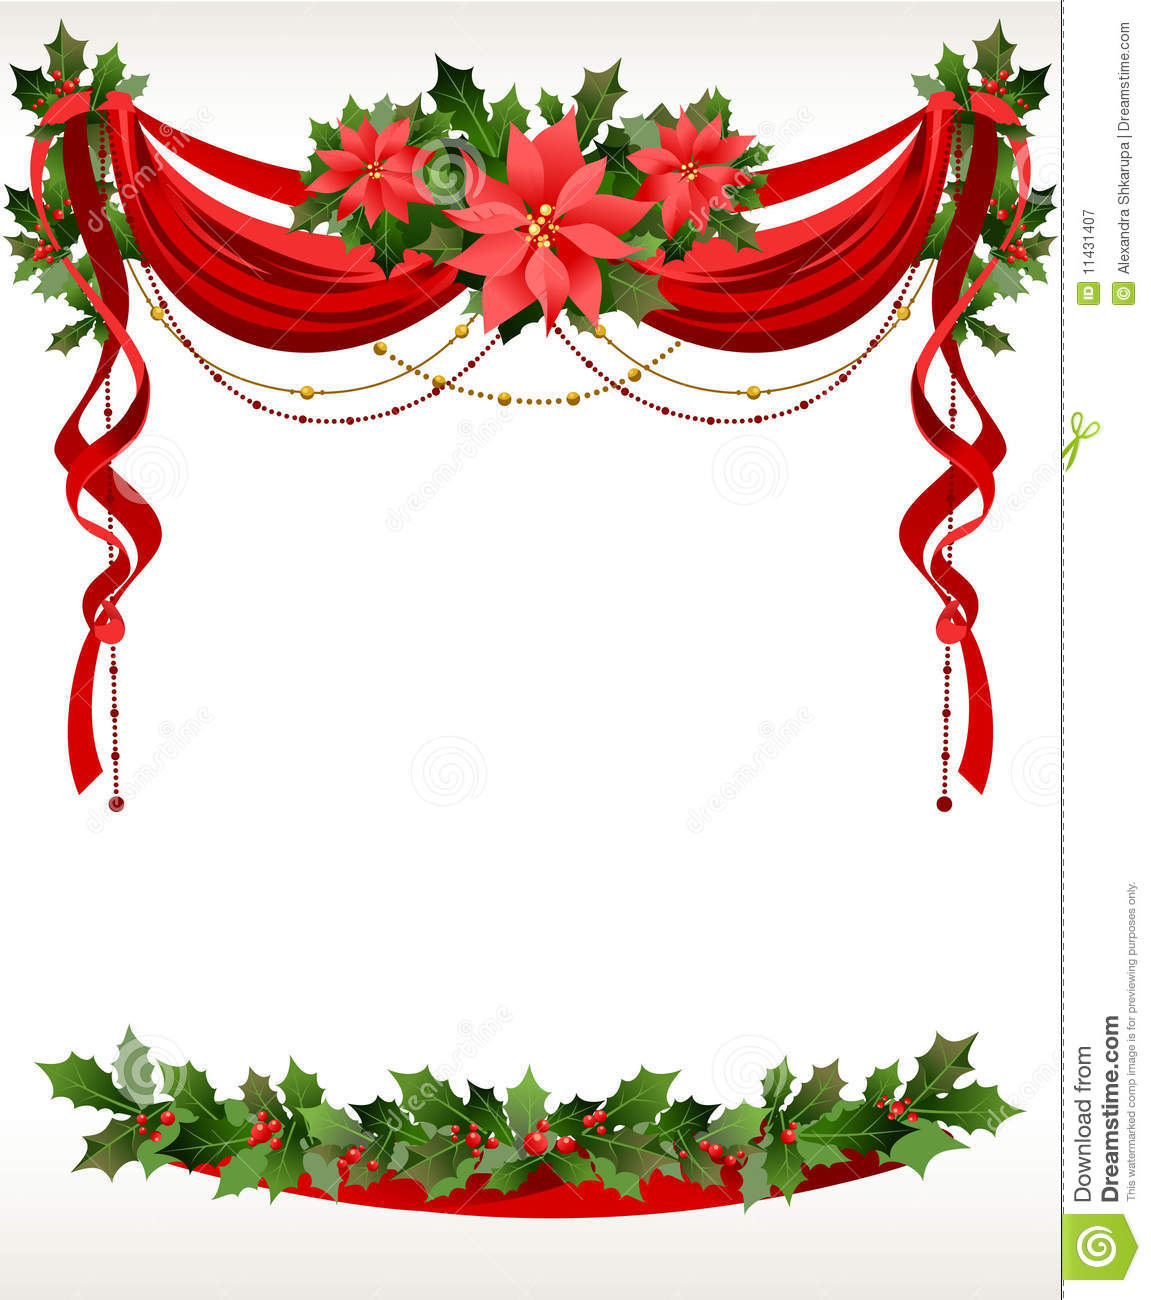 Christmas Frame Clipart - Clipart Kid